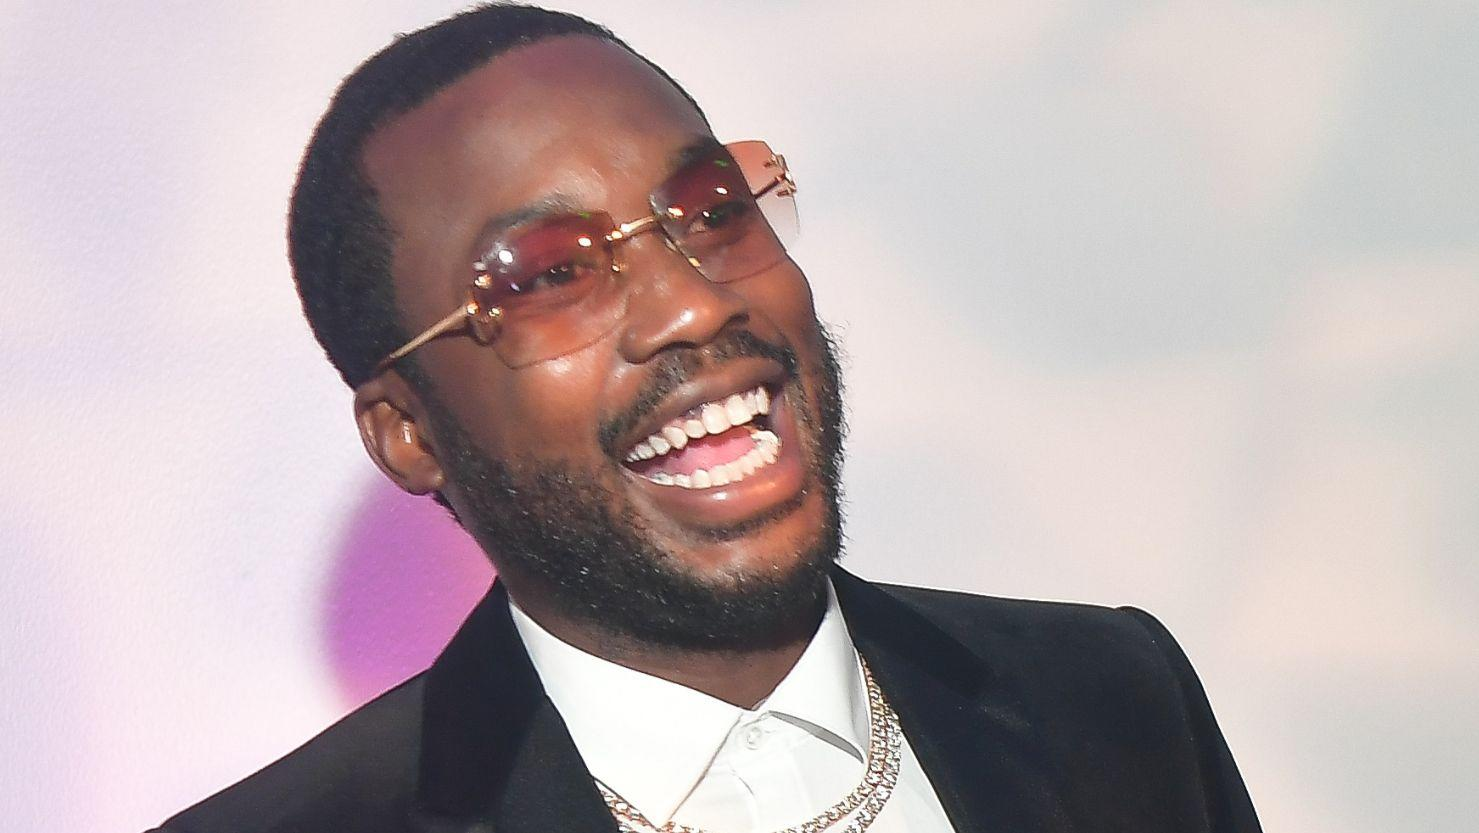 Meek Mill Scores Another Victory In Court Over 2016 Concert Shooting